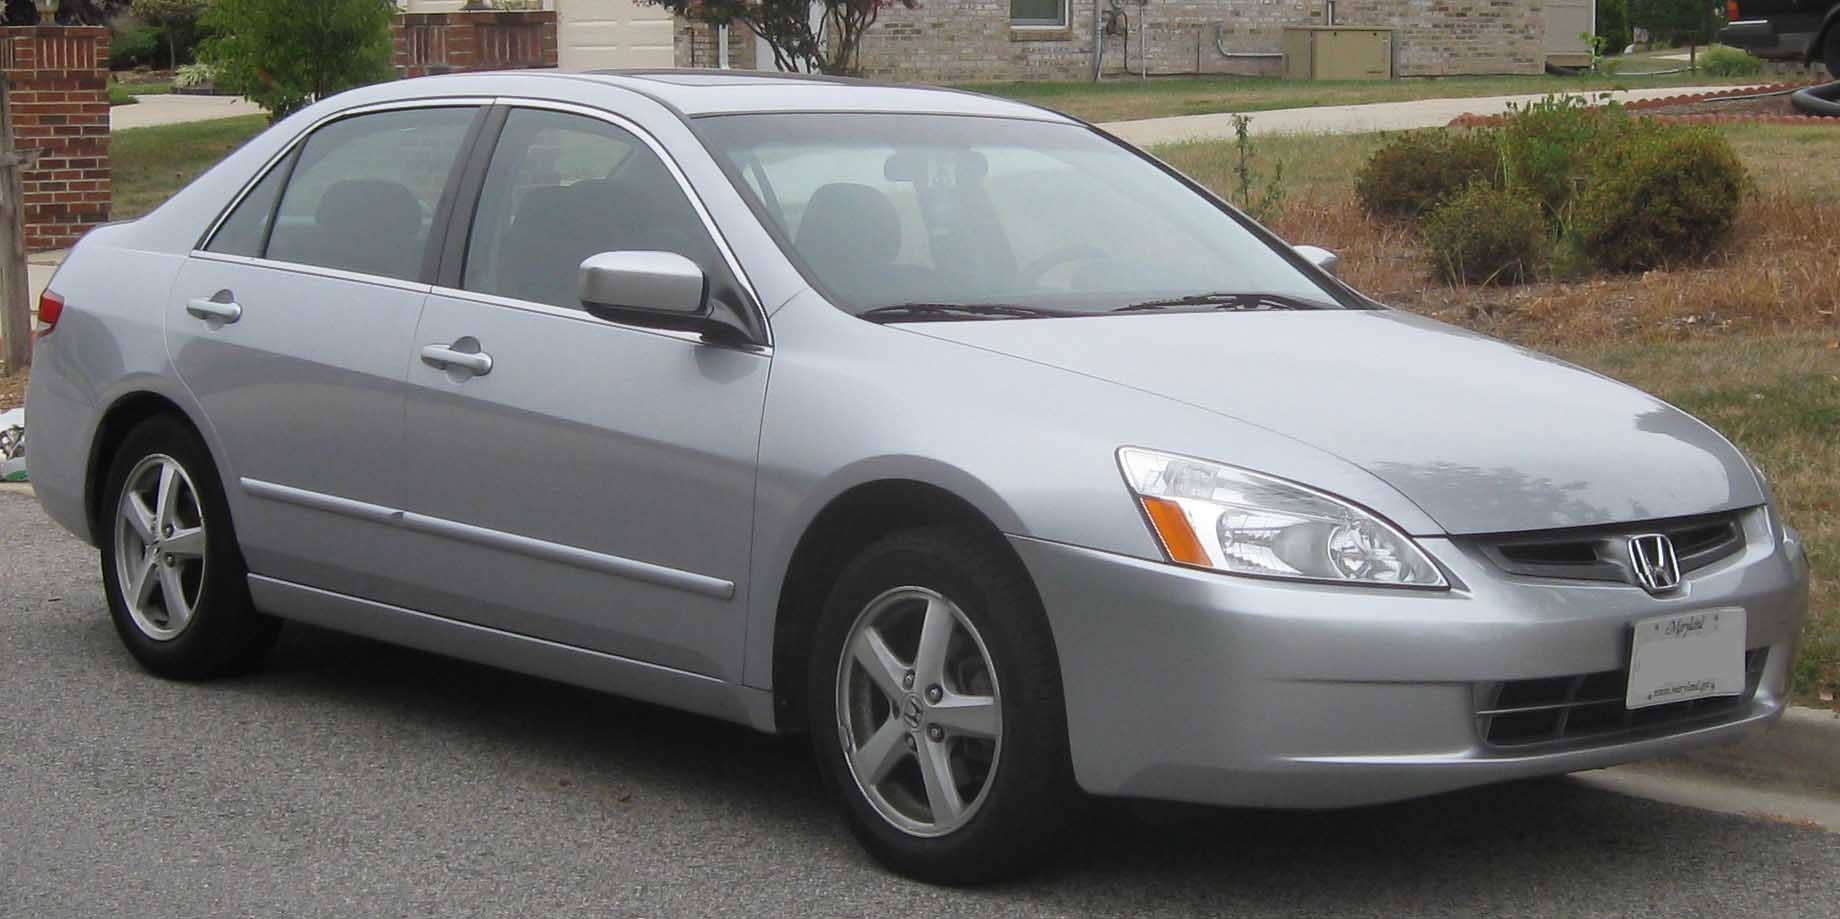 File:03-04 Honda Accord EX sedan.jpg - Wikimedia Commons